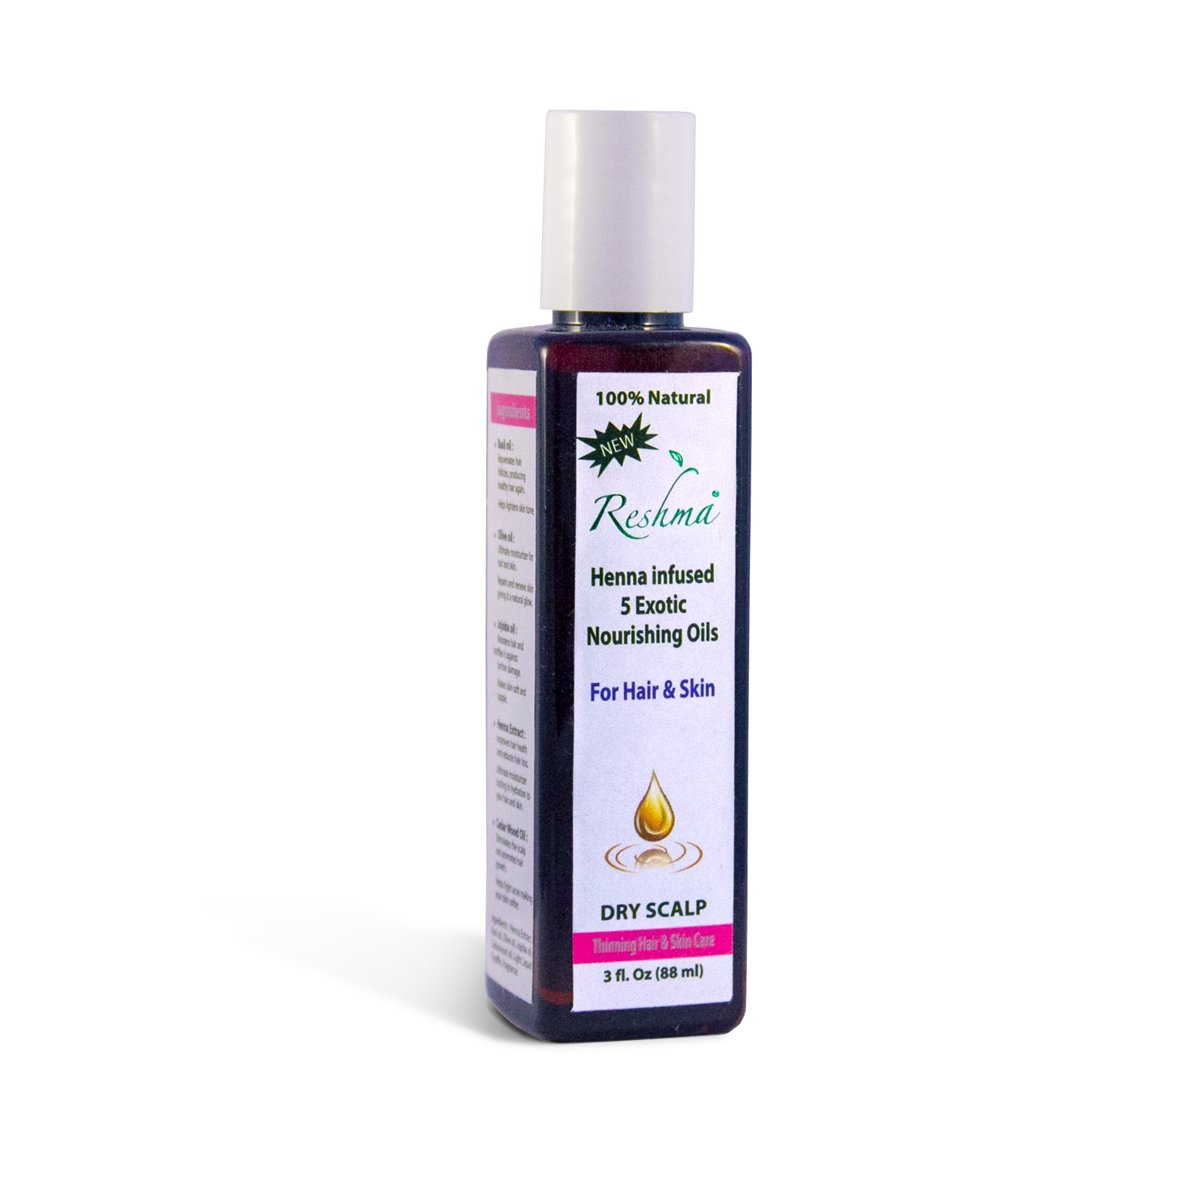 Reshma Beauty Henna Infused Hair Oil For Thinning Hair, Pack Of 1